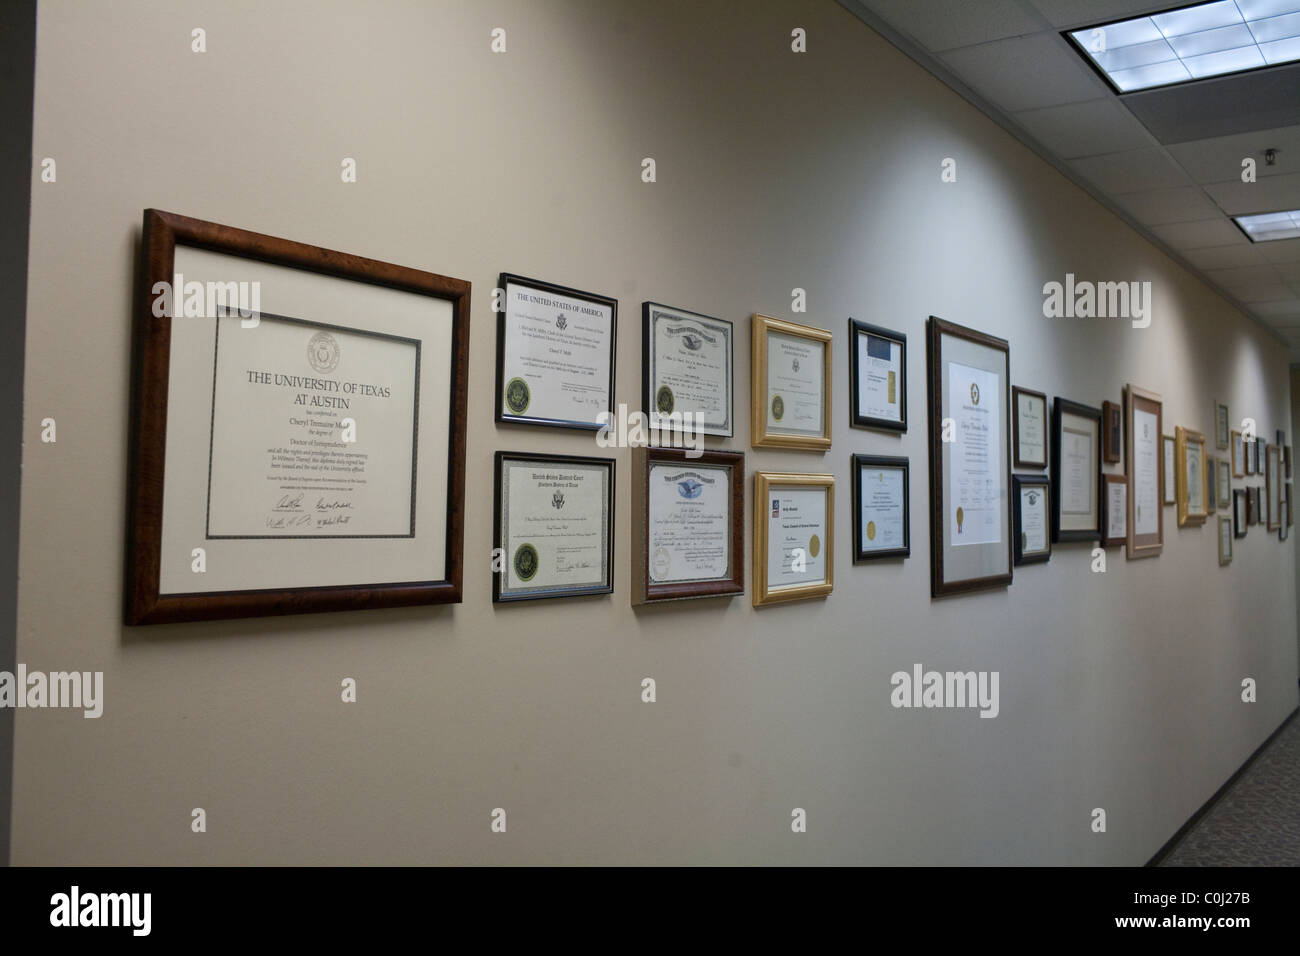 Framed diplomas, degrees, certificates and awards earned by attorneys line wall of law firm's office in Austin - Stock Image